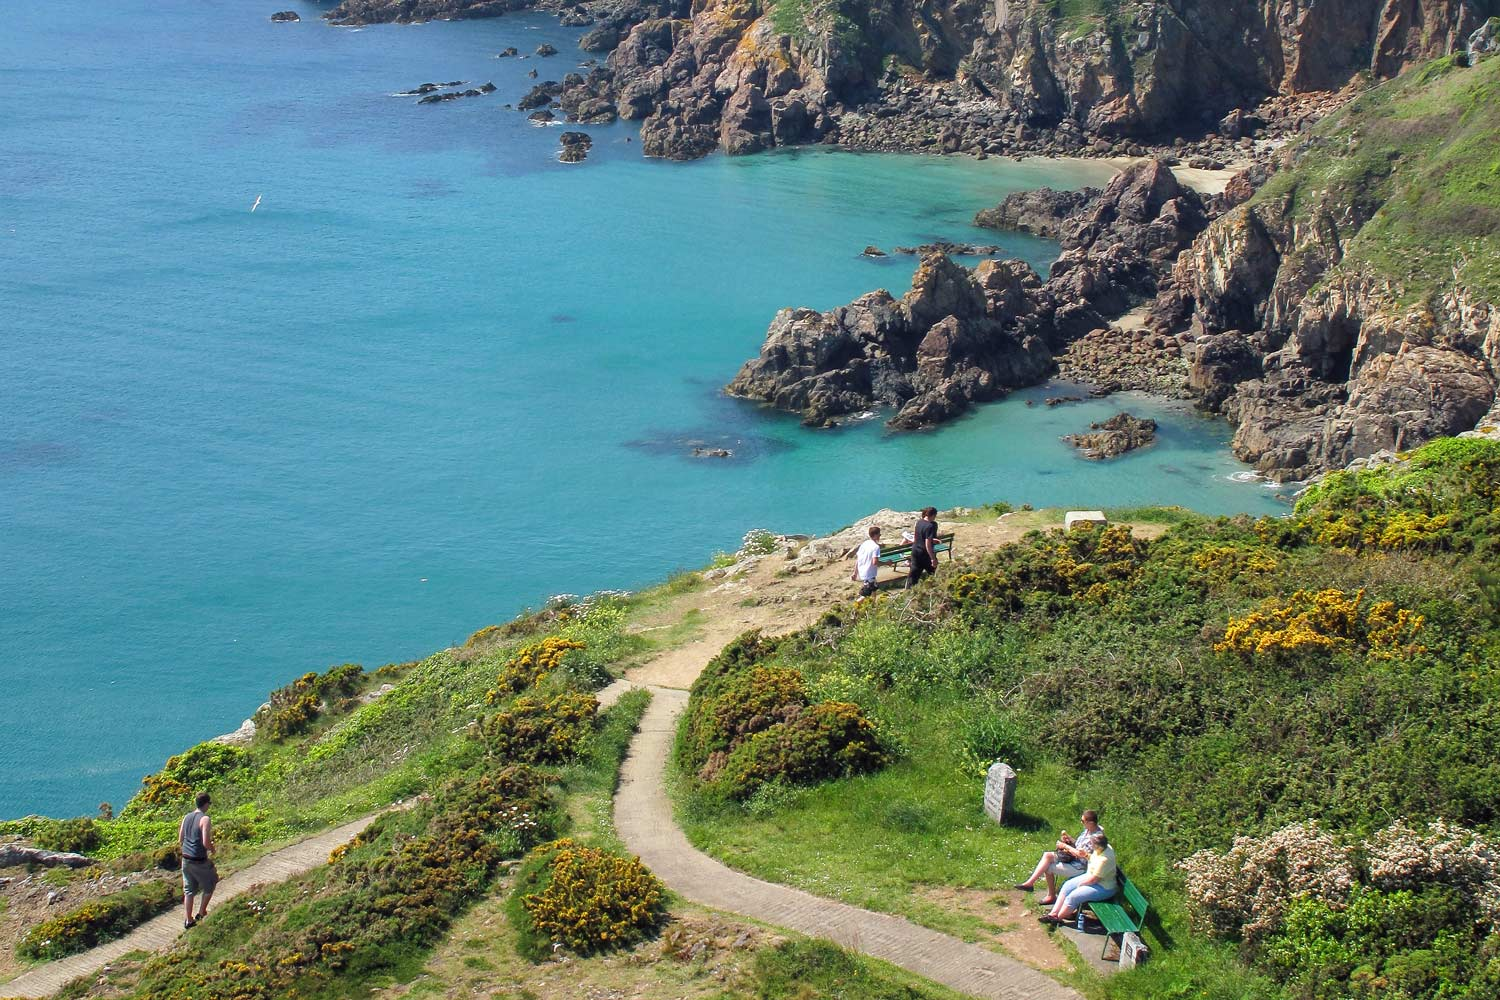 Guernsey's cliffs - The cliffs are awash with flowering plants in spring, but at any time of year, the well marked paths with benches ensure you can walk as far as you like and always find a place to stop and rest to admire the views.